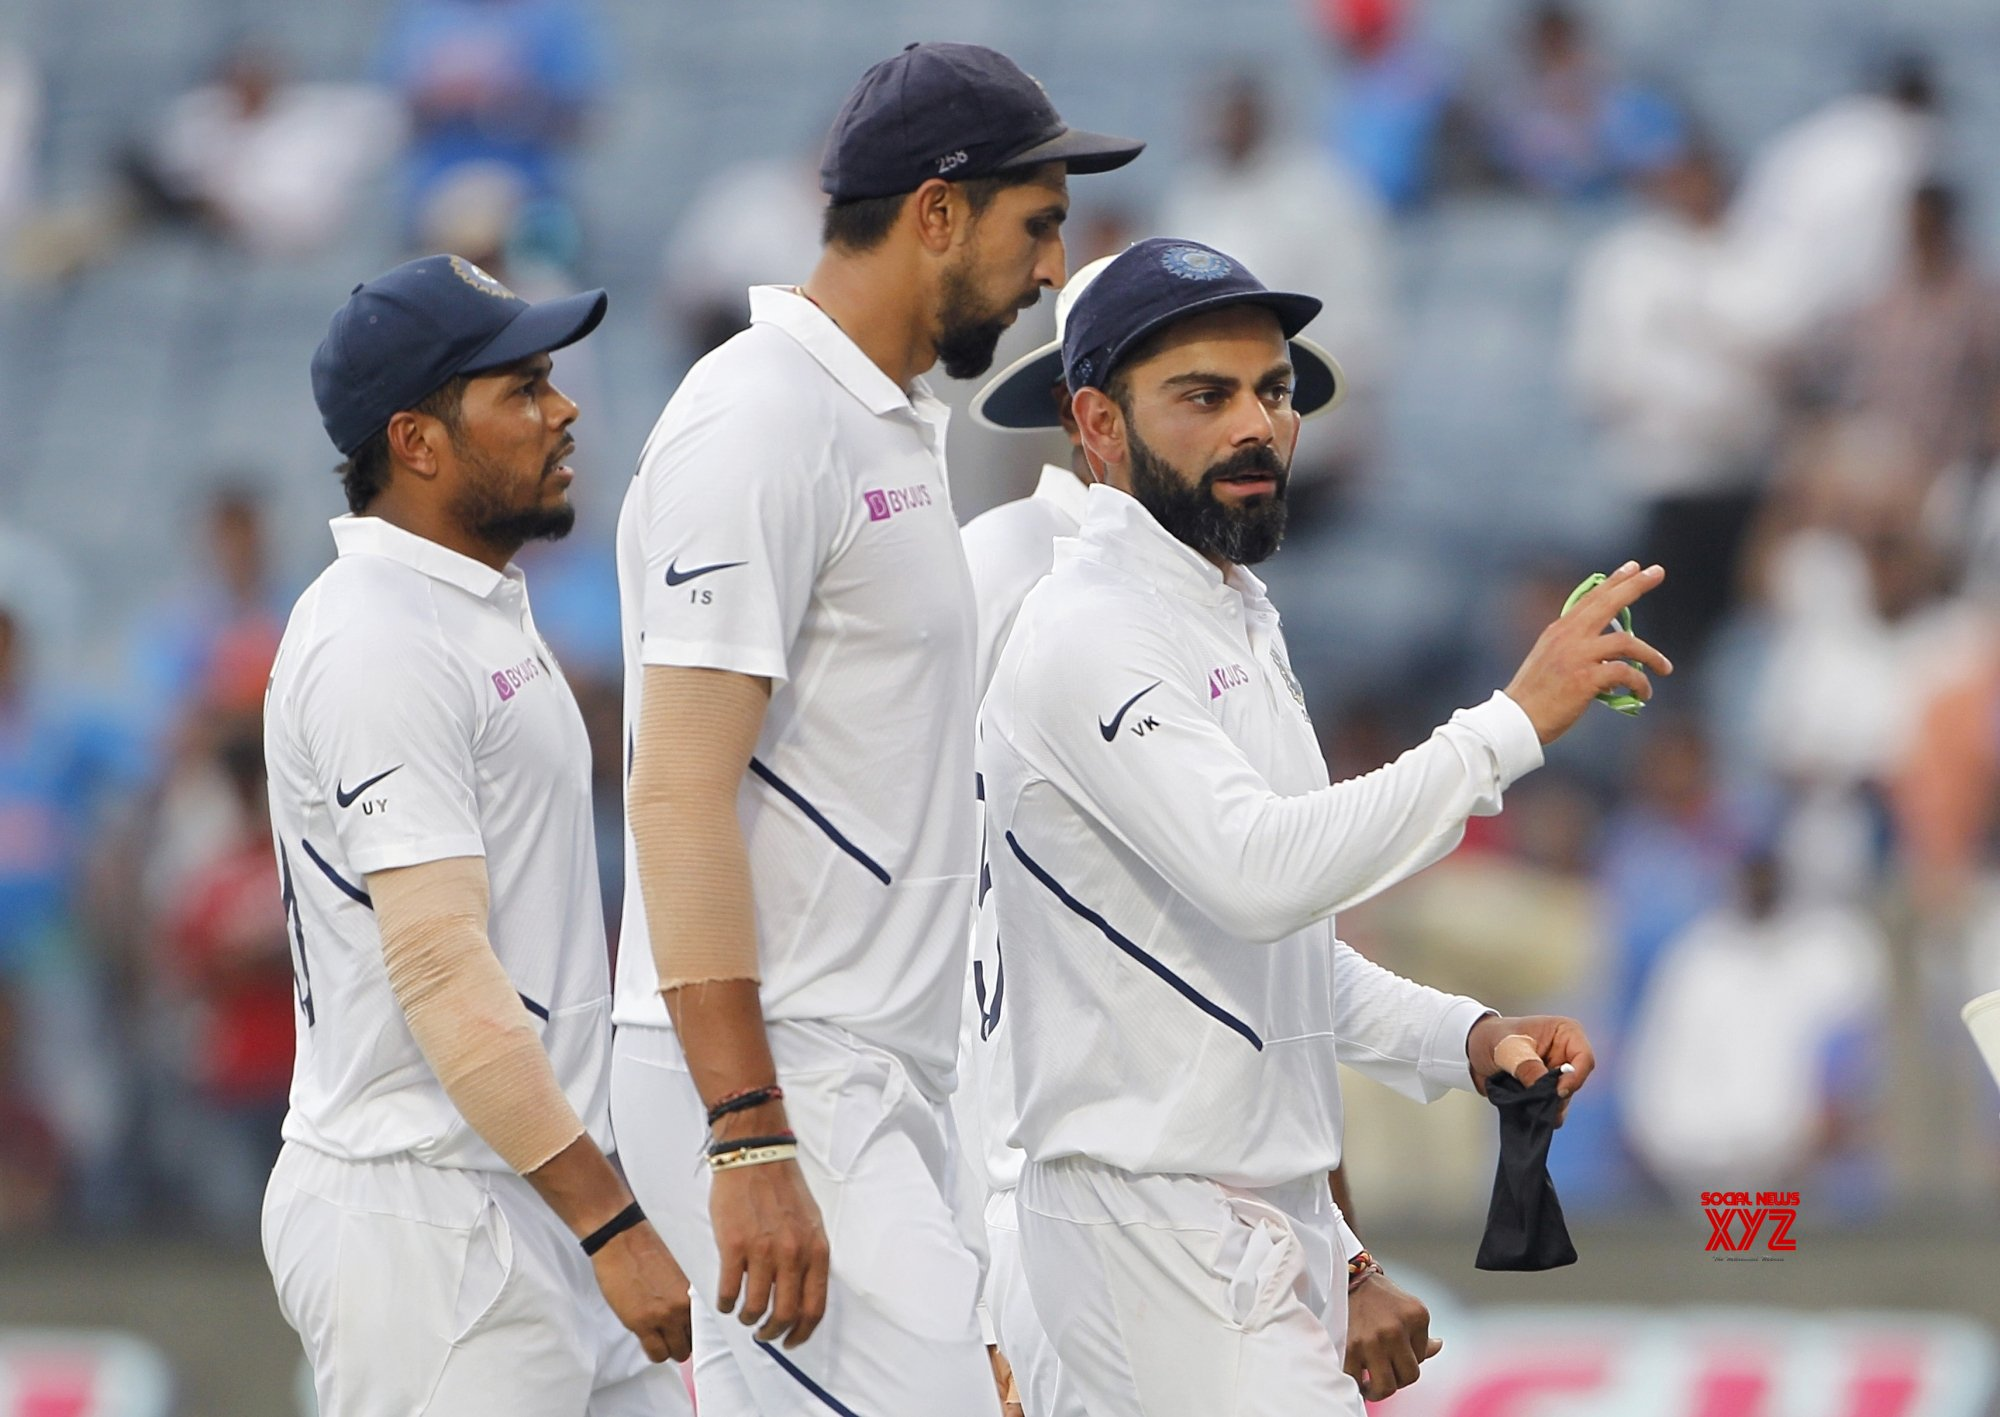 Pune: 2nd Test - India Vs South Africa - Day 2 (Batch - 25) #Gallery